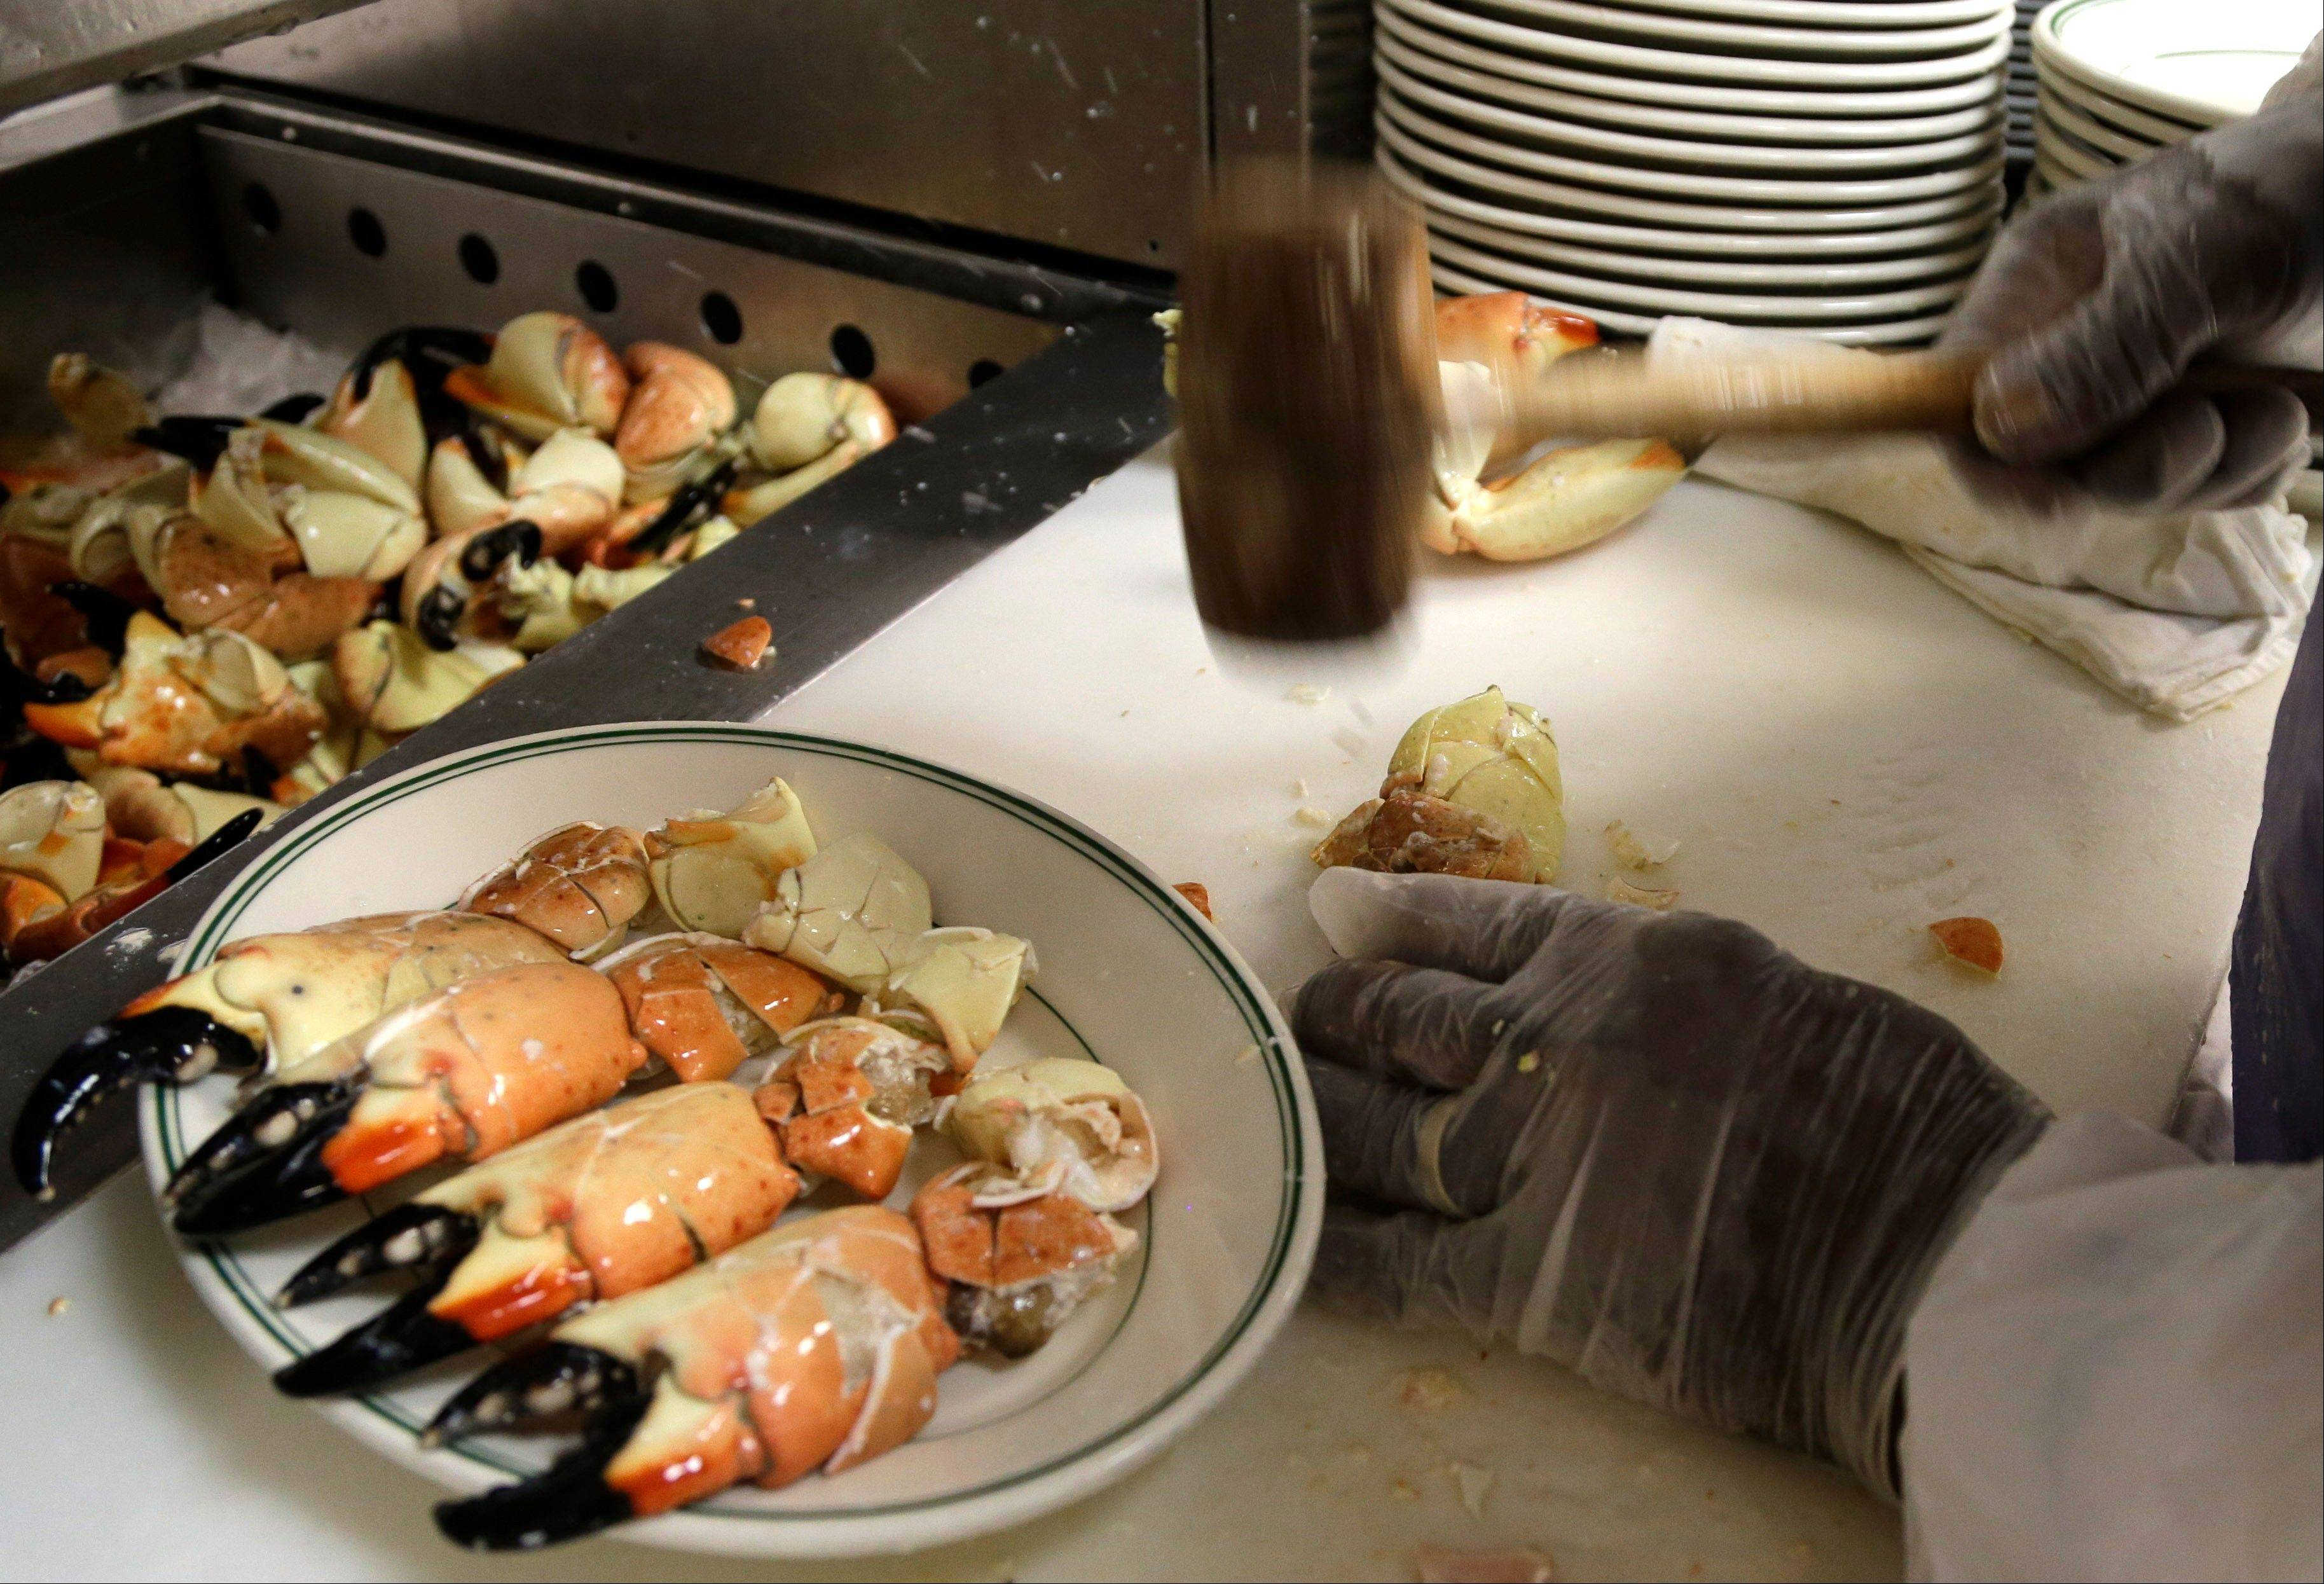 Eugene Green cracks stone crabs with a mallet while working in the kitchen at Joe's Stone Crab restaurant in Miami Beach, Fla. Green has worked for the family-owned restaurant for more than 40 forty years.